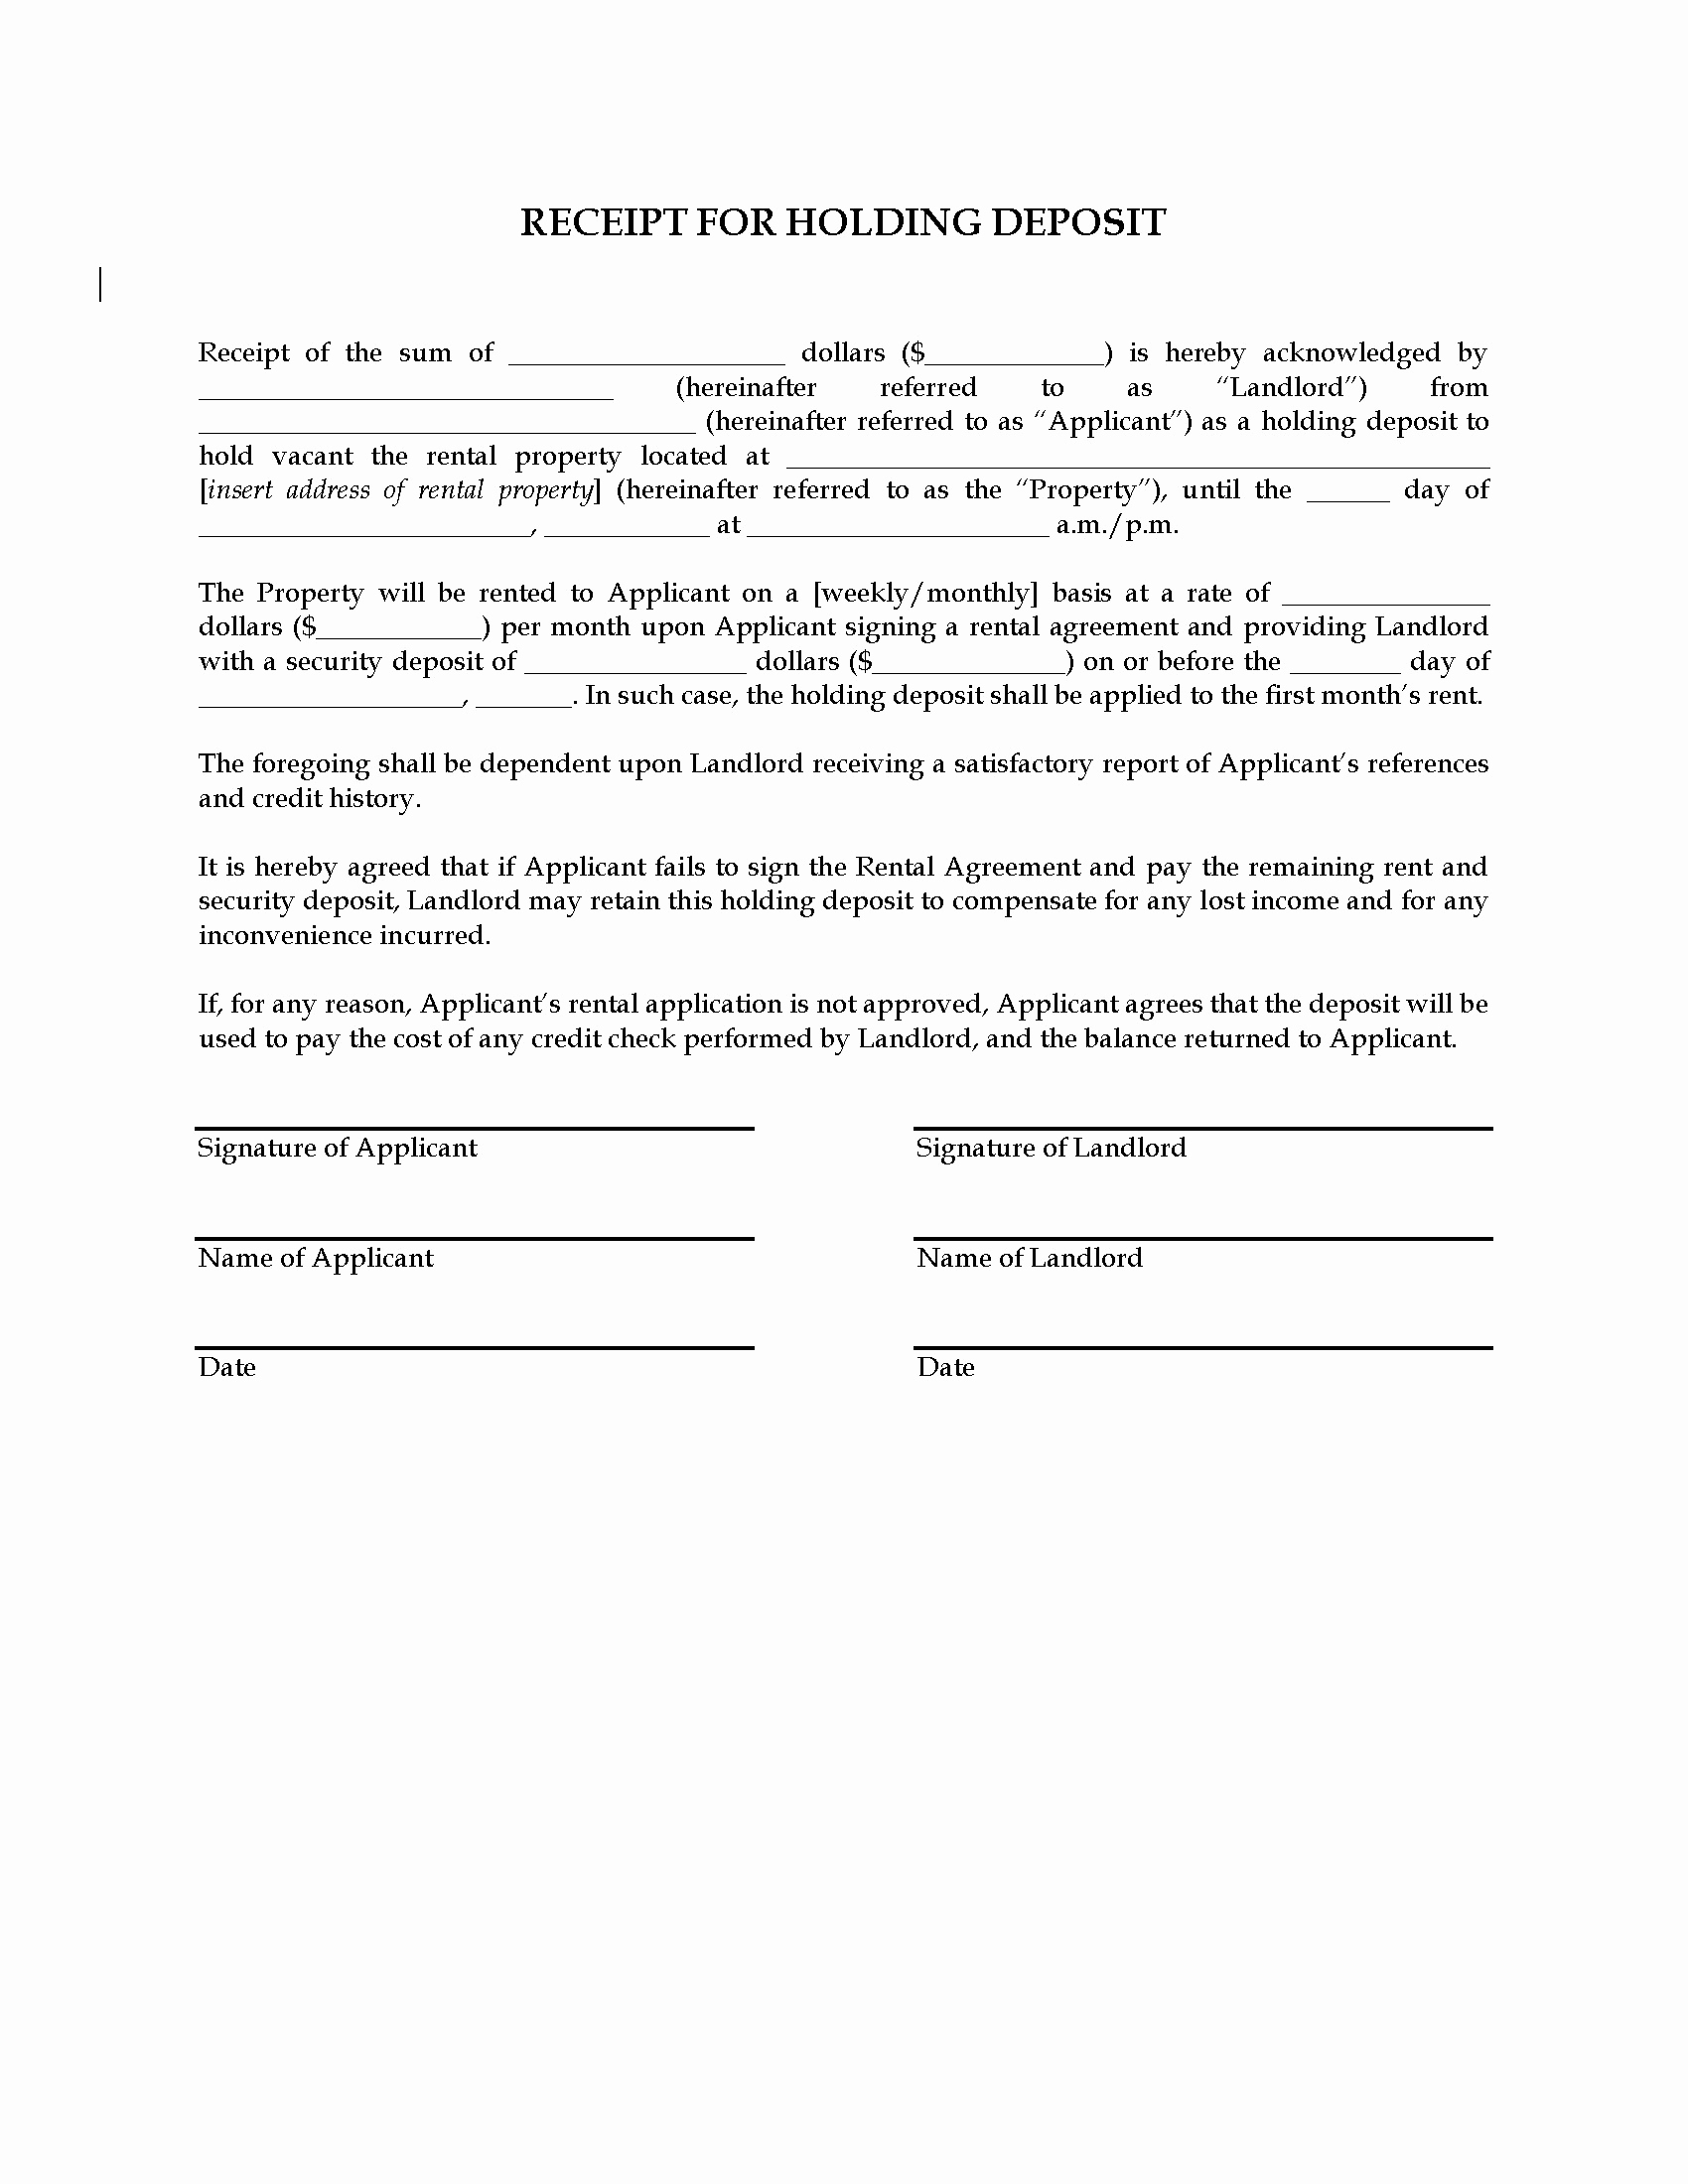 renewal of lease agreement letter